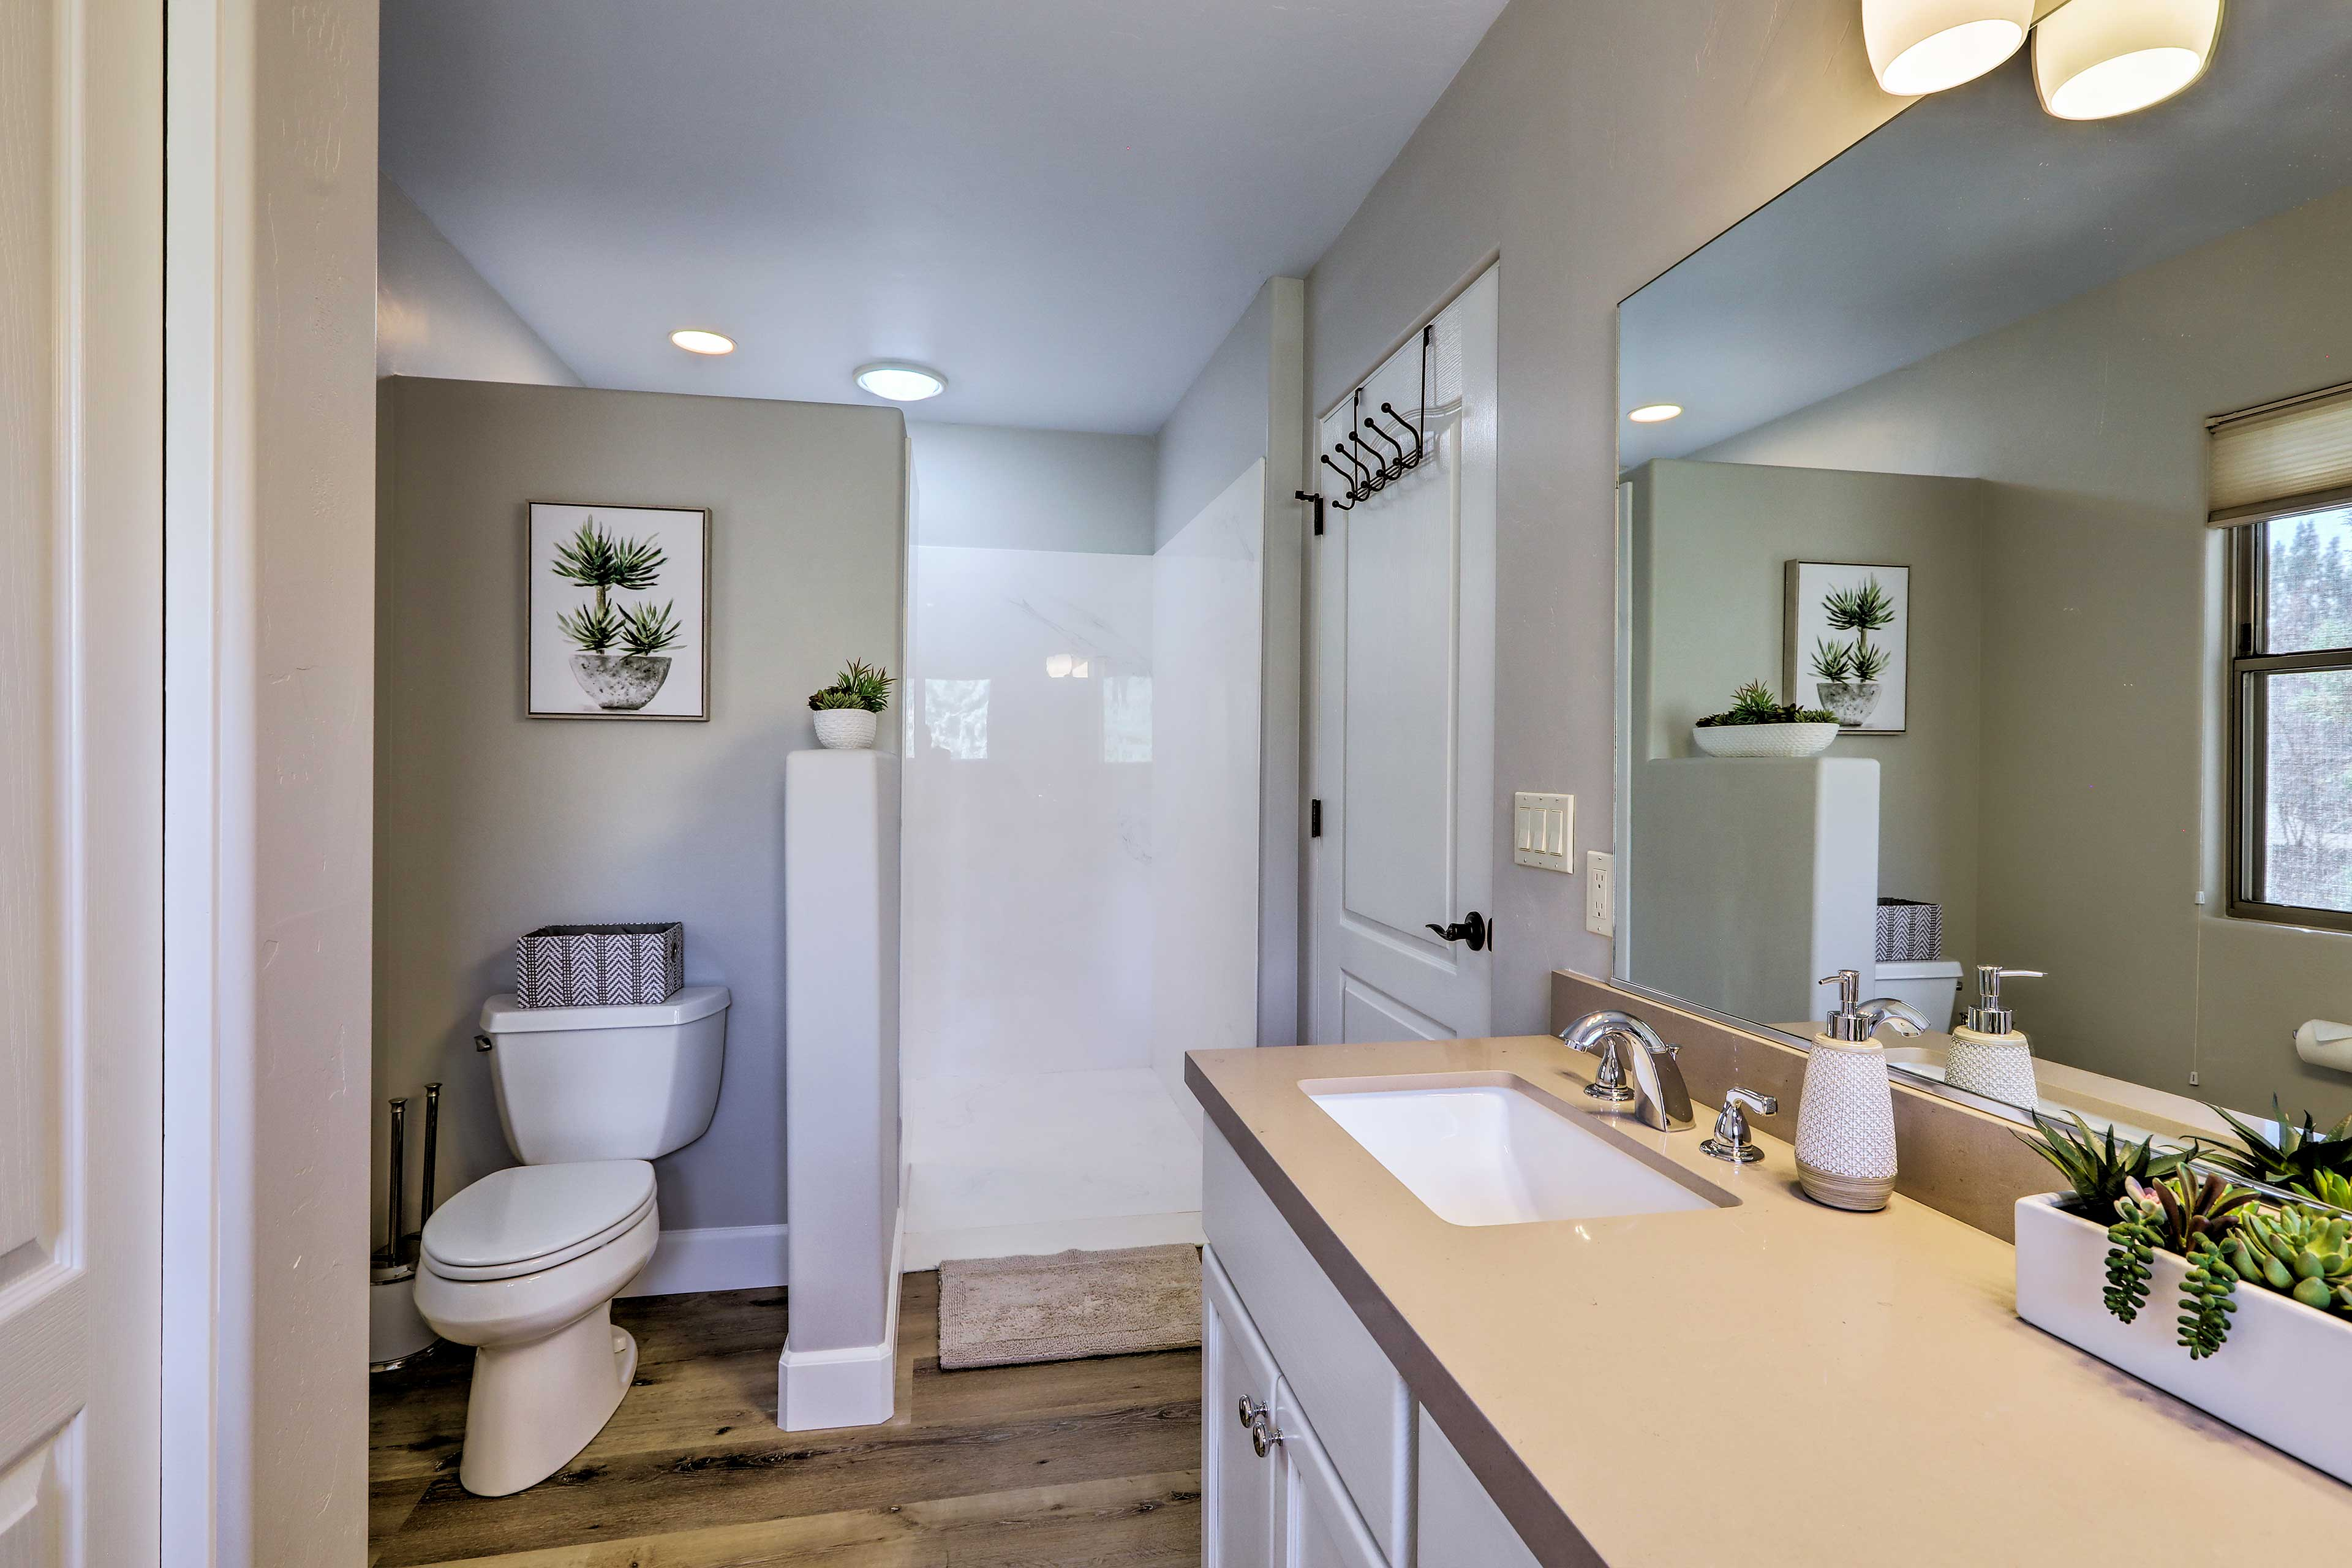 The master bath features both a walk-in shower and soaking tub.